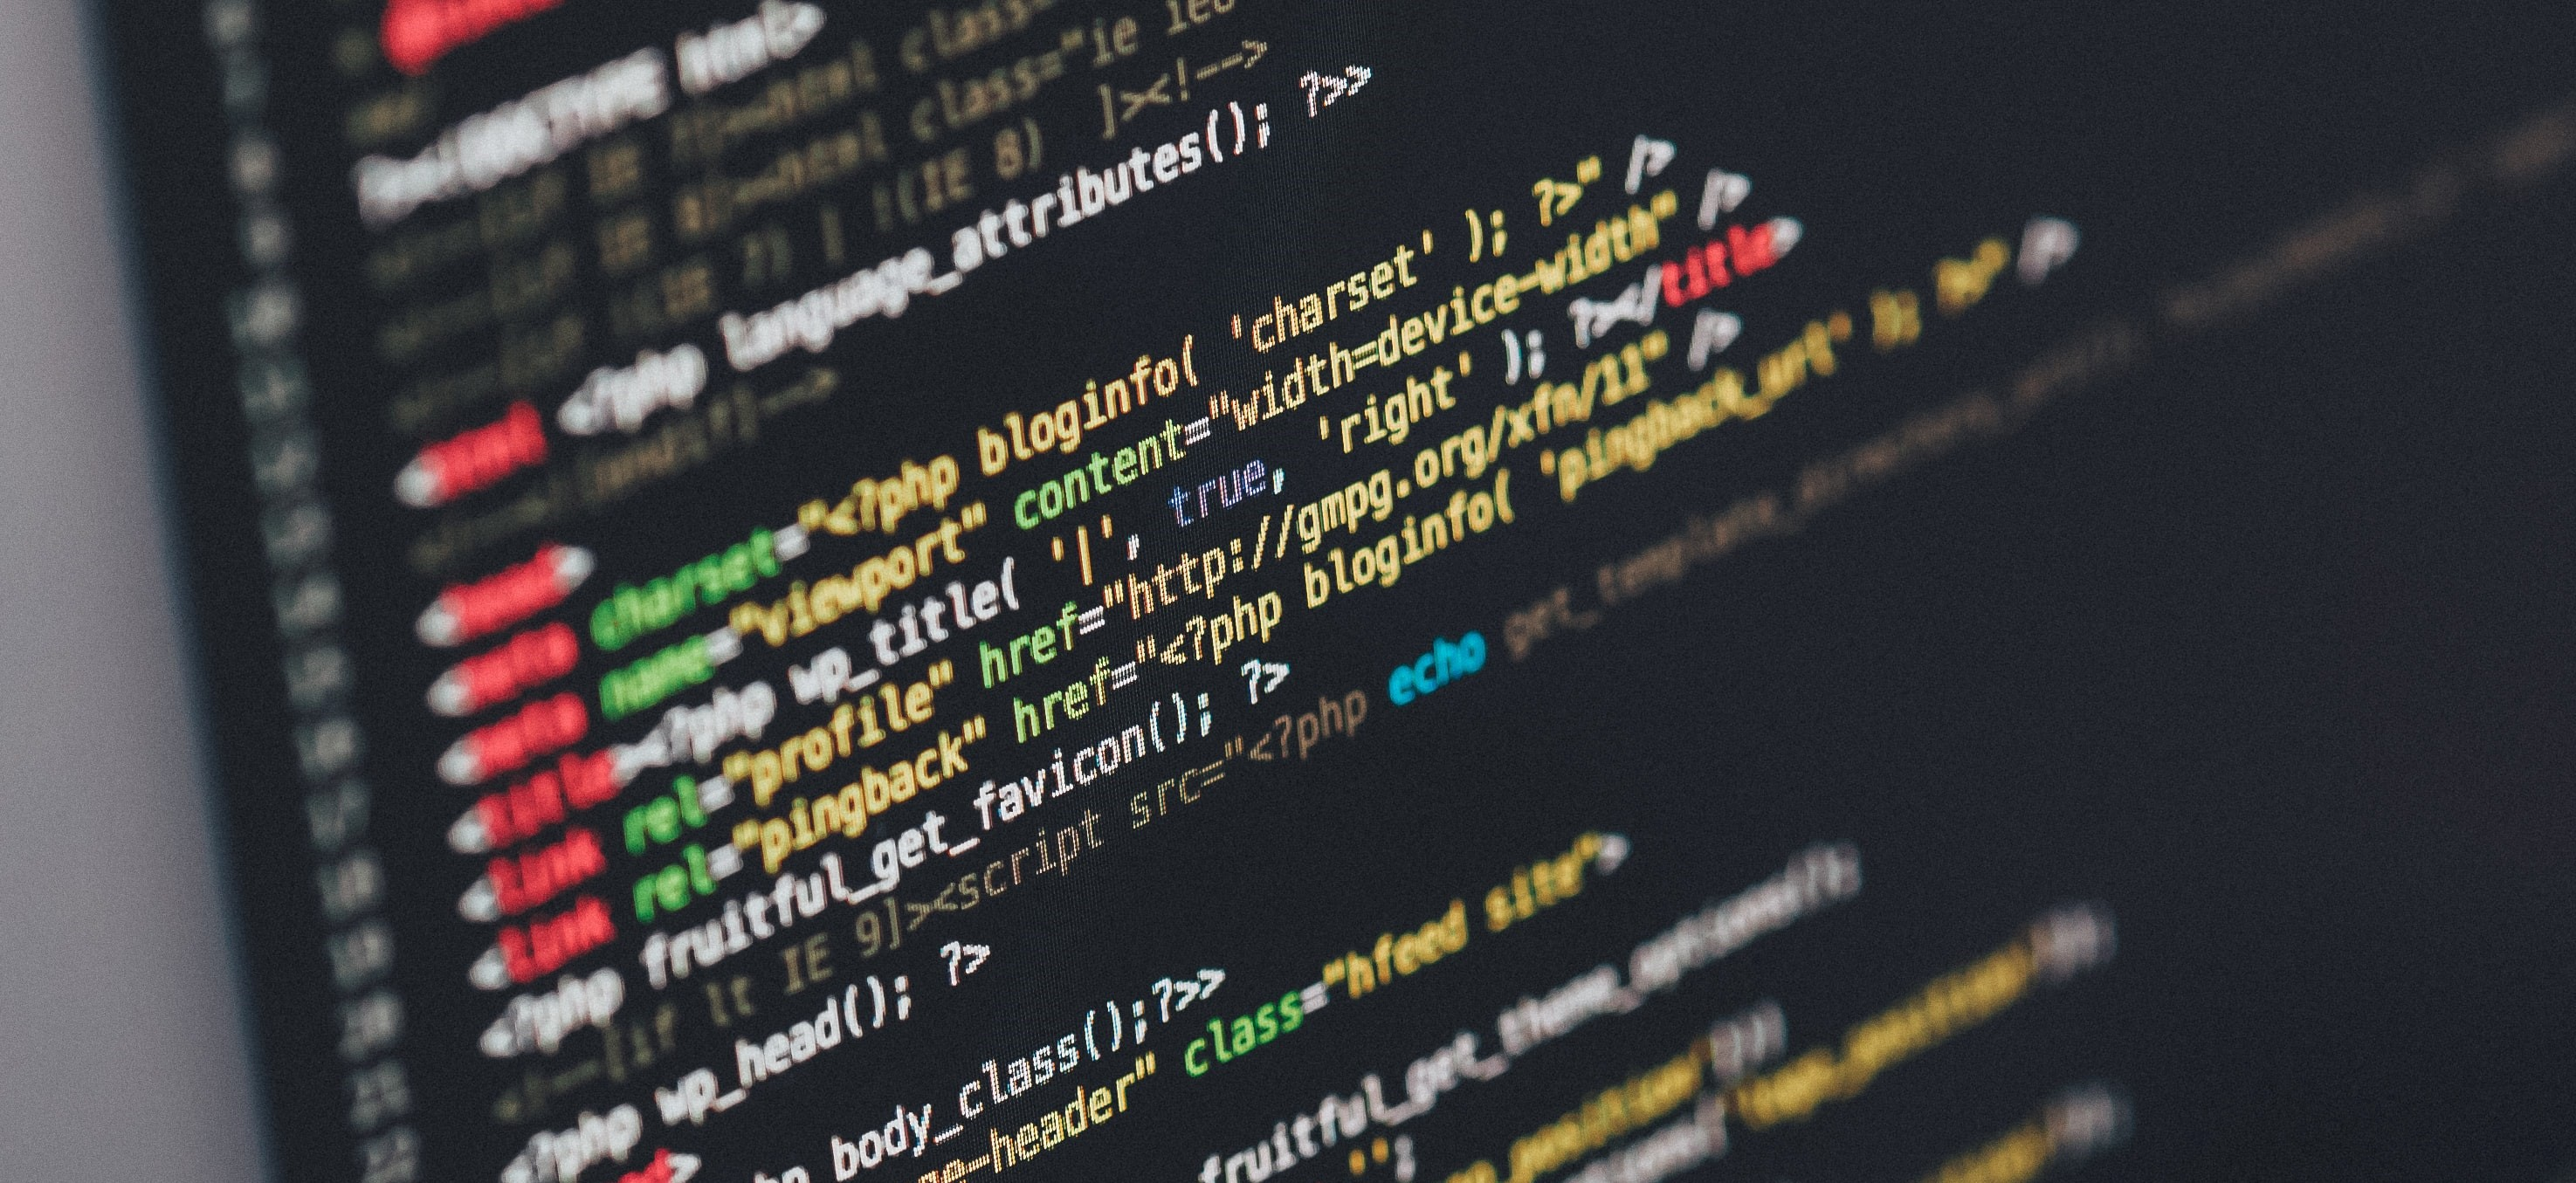 How To Setup Sublime Text For C Competitive Coding By Arpit Falcon Data Driven Investor Medium